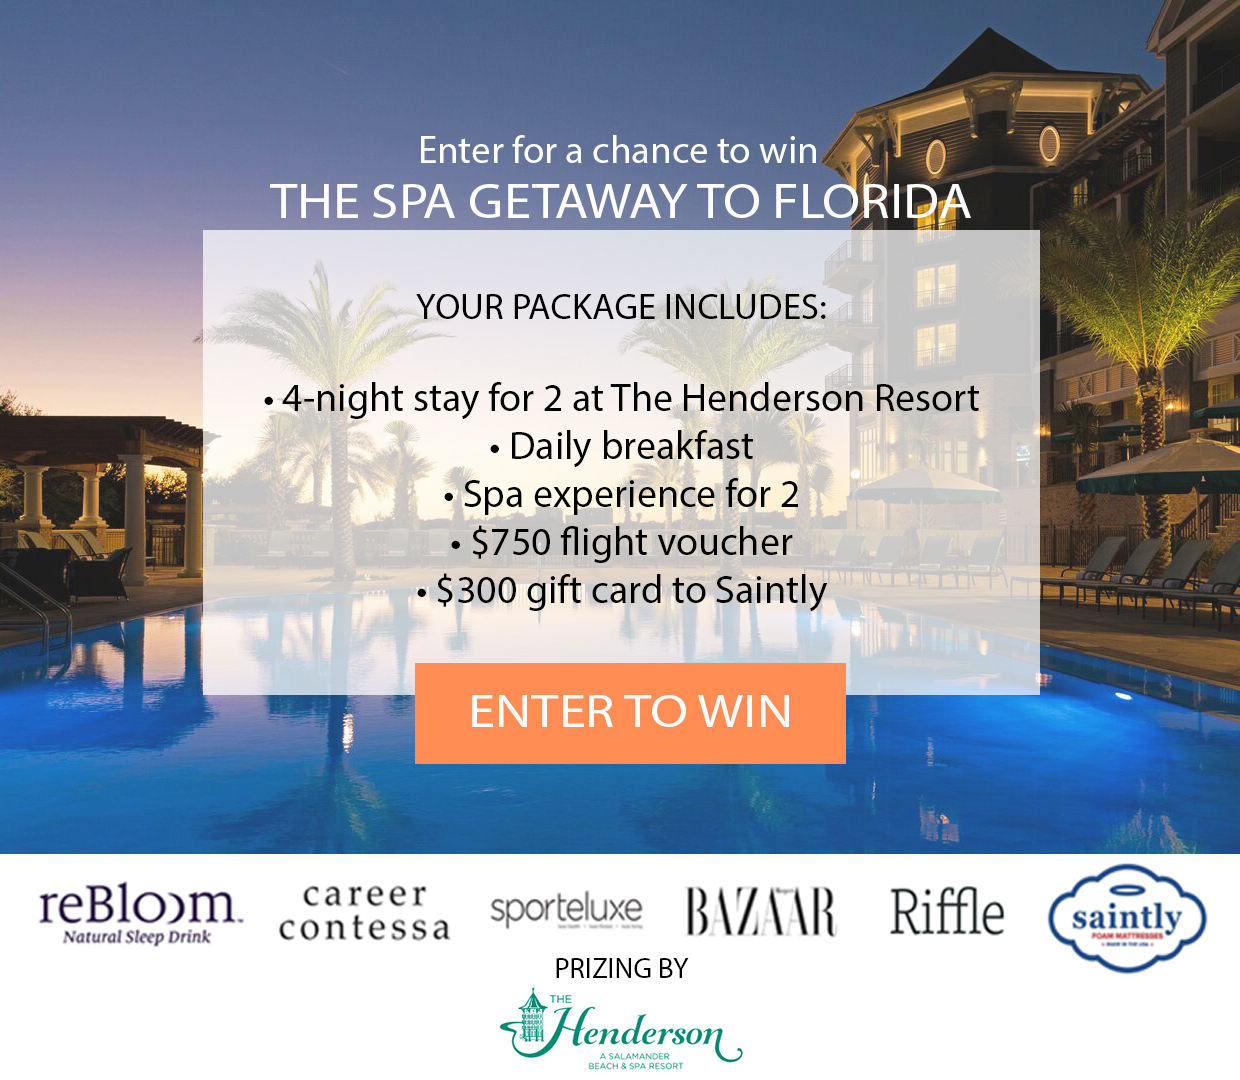 Enter for a chance to win  The Spa Getaway to The Henderson Resort in Destin, Florida!   YOUR PACKAGE INCLUDES:     5-day/4-night accommodations for two at The Henderson in Destin, Florida   Daily breakfast for two during stay   One spa experience for two during stay     $750 Flight voucher     $300 gift card to Saintly  (Must be 18 years of age and has reached the age of majority in their jurisdiction of residence at the time of opt-in (19 in Alabama and Nebraska; 21 in Mississippi) and lives within the continental United States (excluding Rhode Island) and has a valid email address. (Ends on 7/22/2017 at 3:59am)